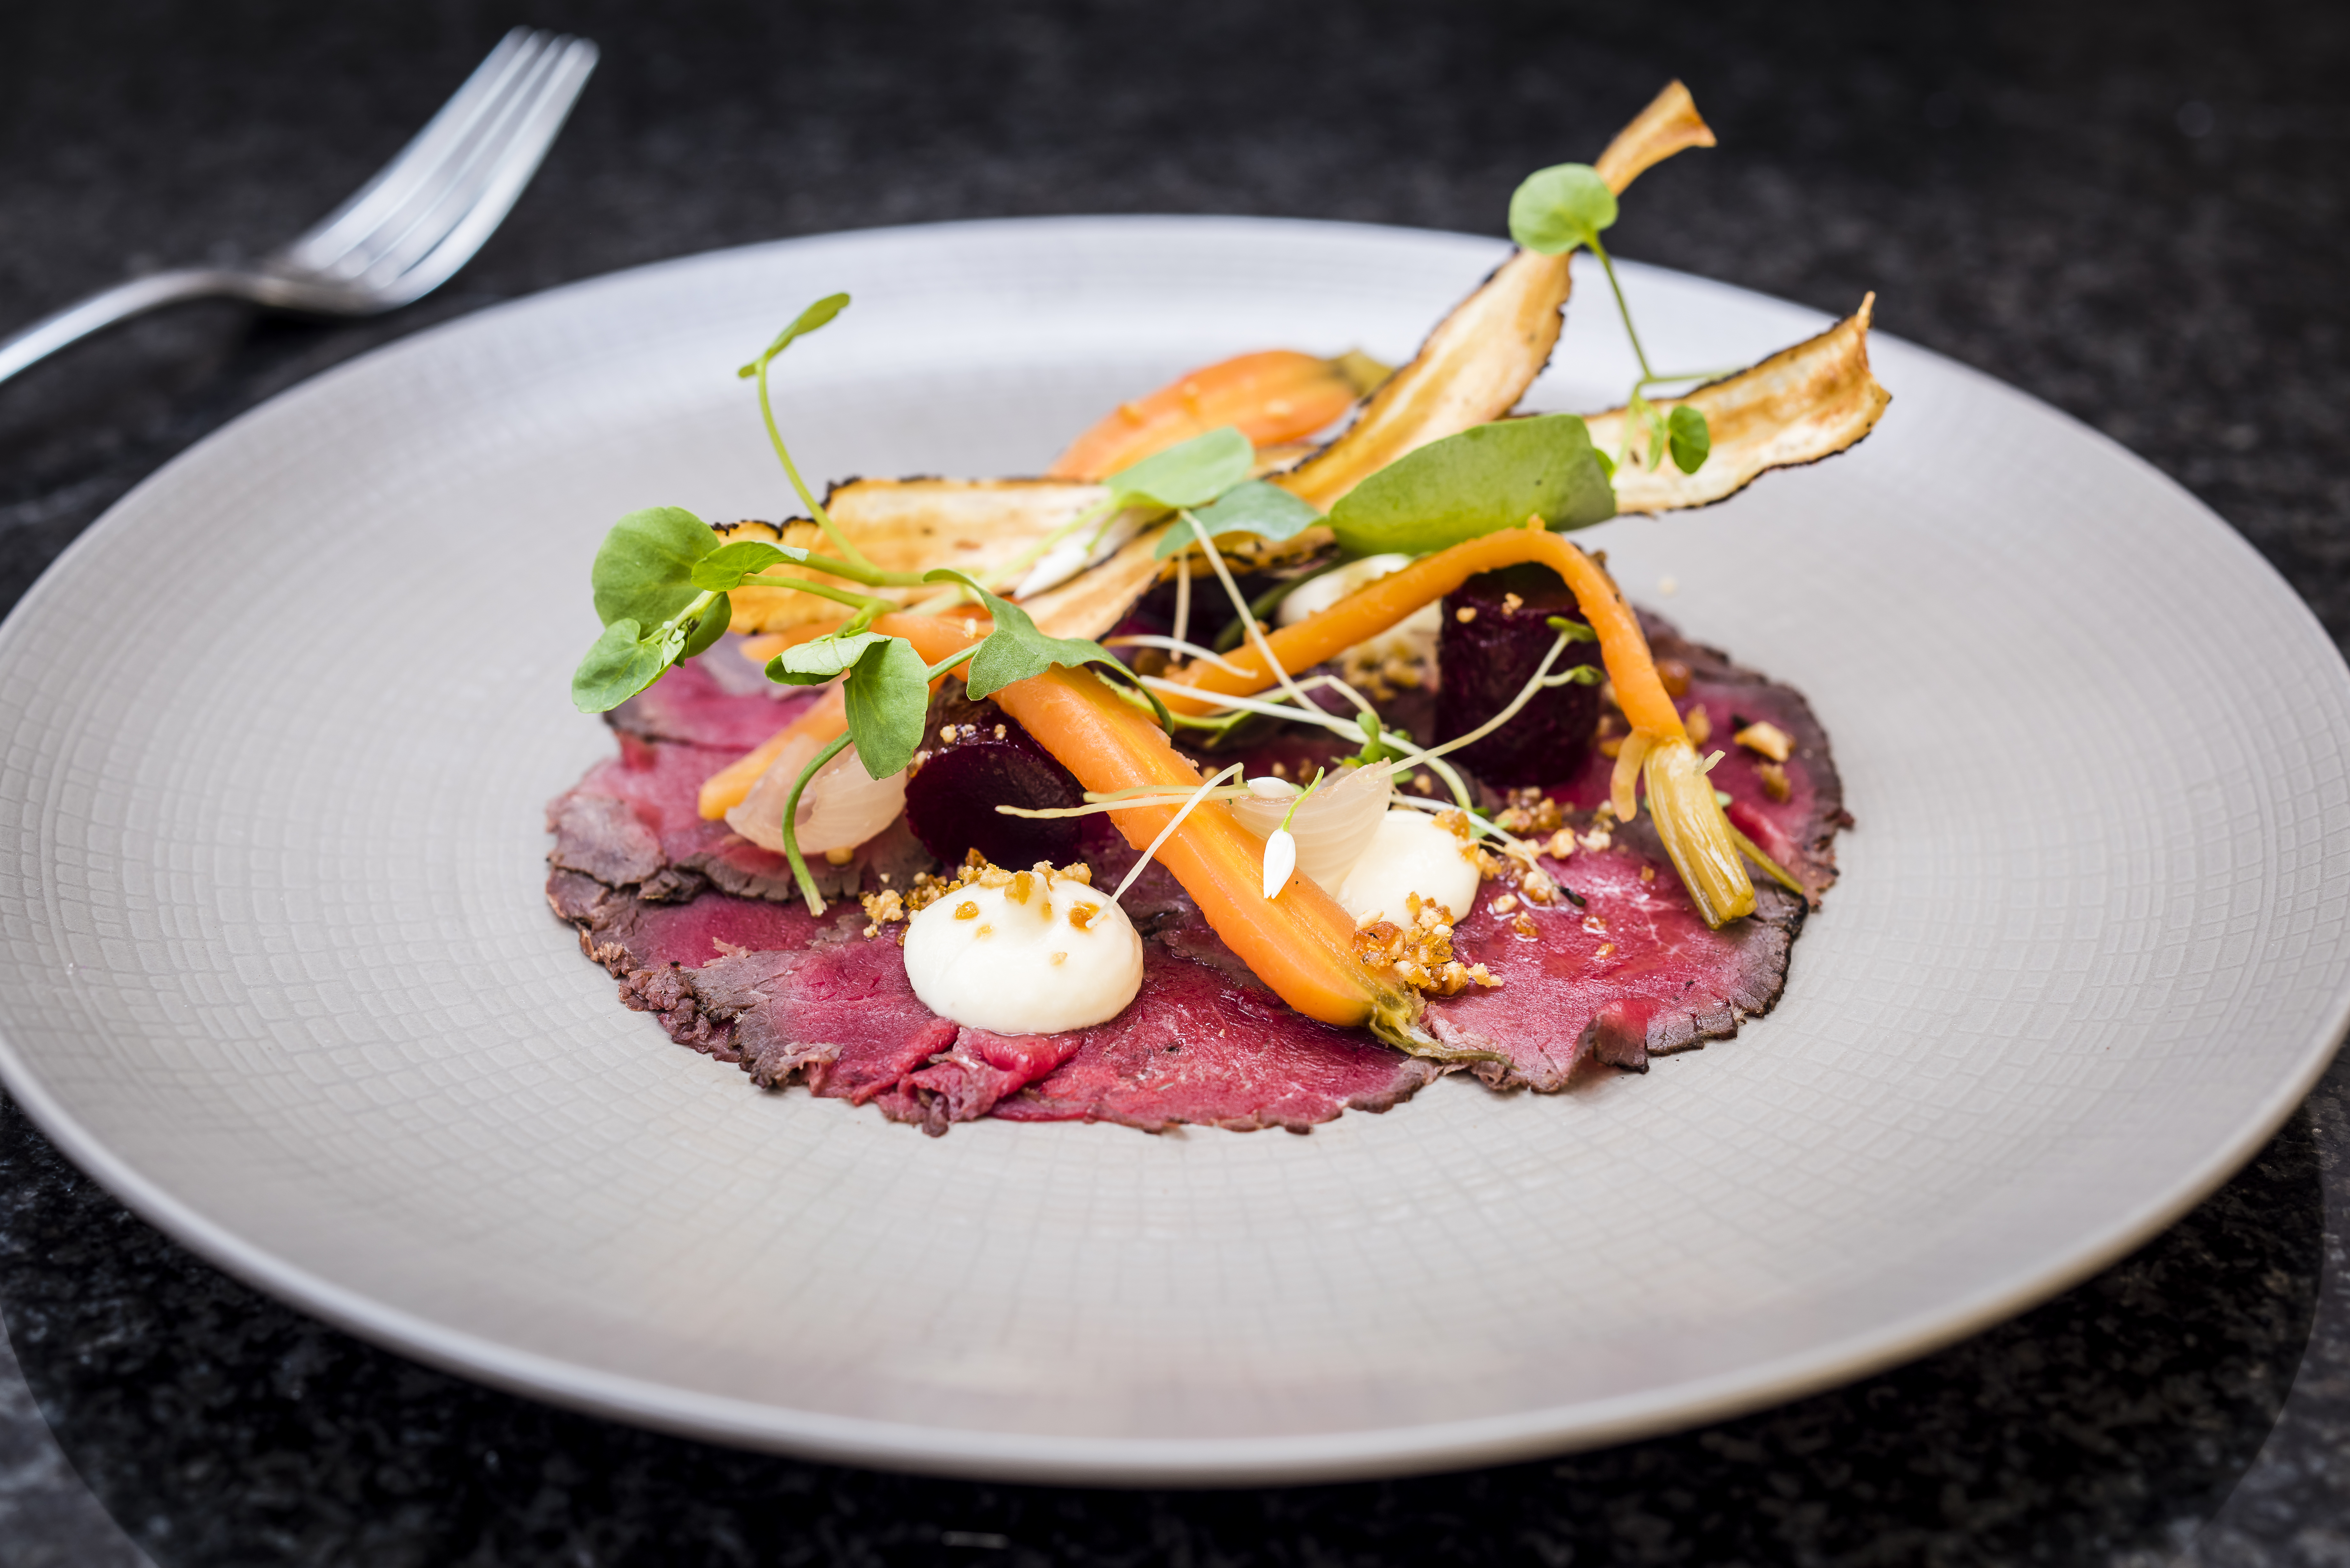 Reserve a table at Bluebird Chelsea